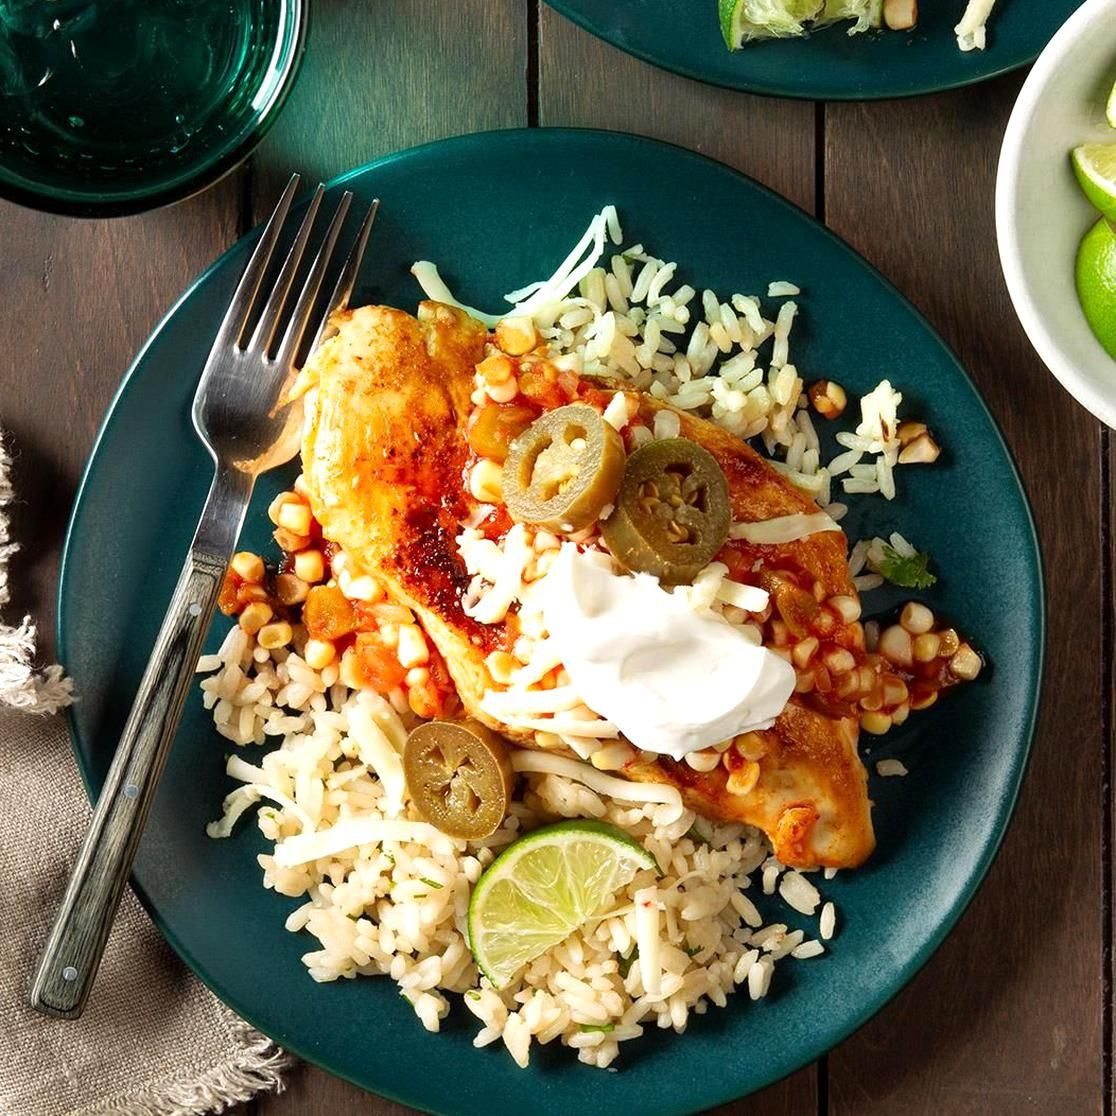 Southwest Smothered Chicken Recipe Taste Of Home In 2020 Tasty Chicken Dishes Smothered Chicken Poultry Recipes